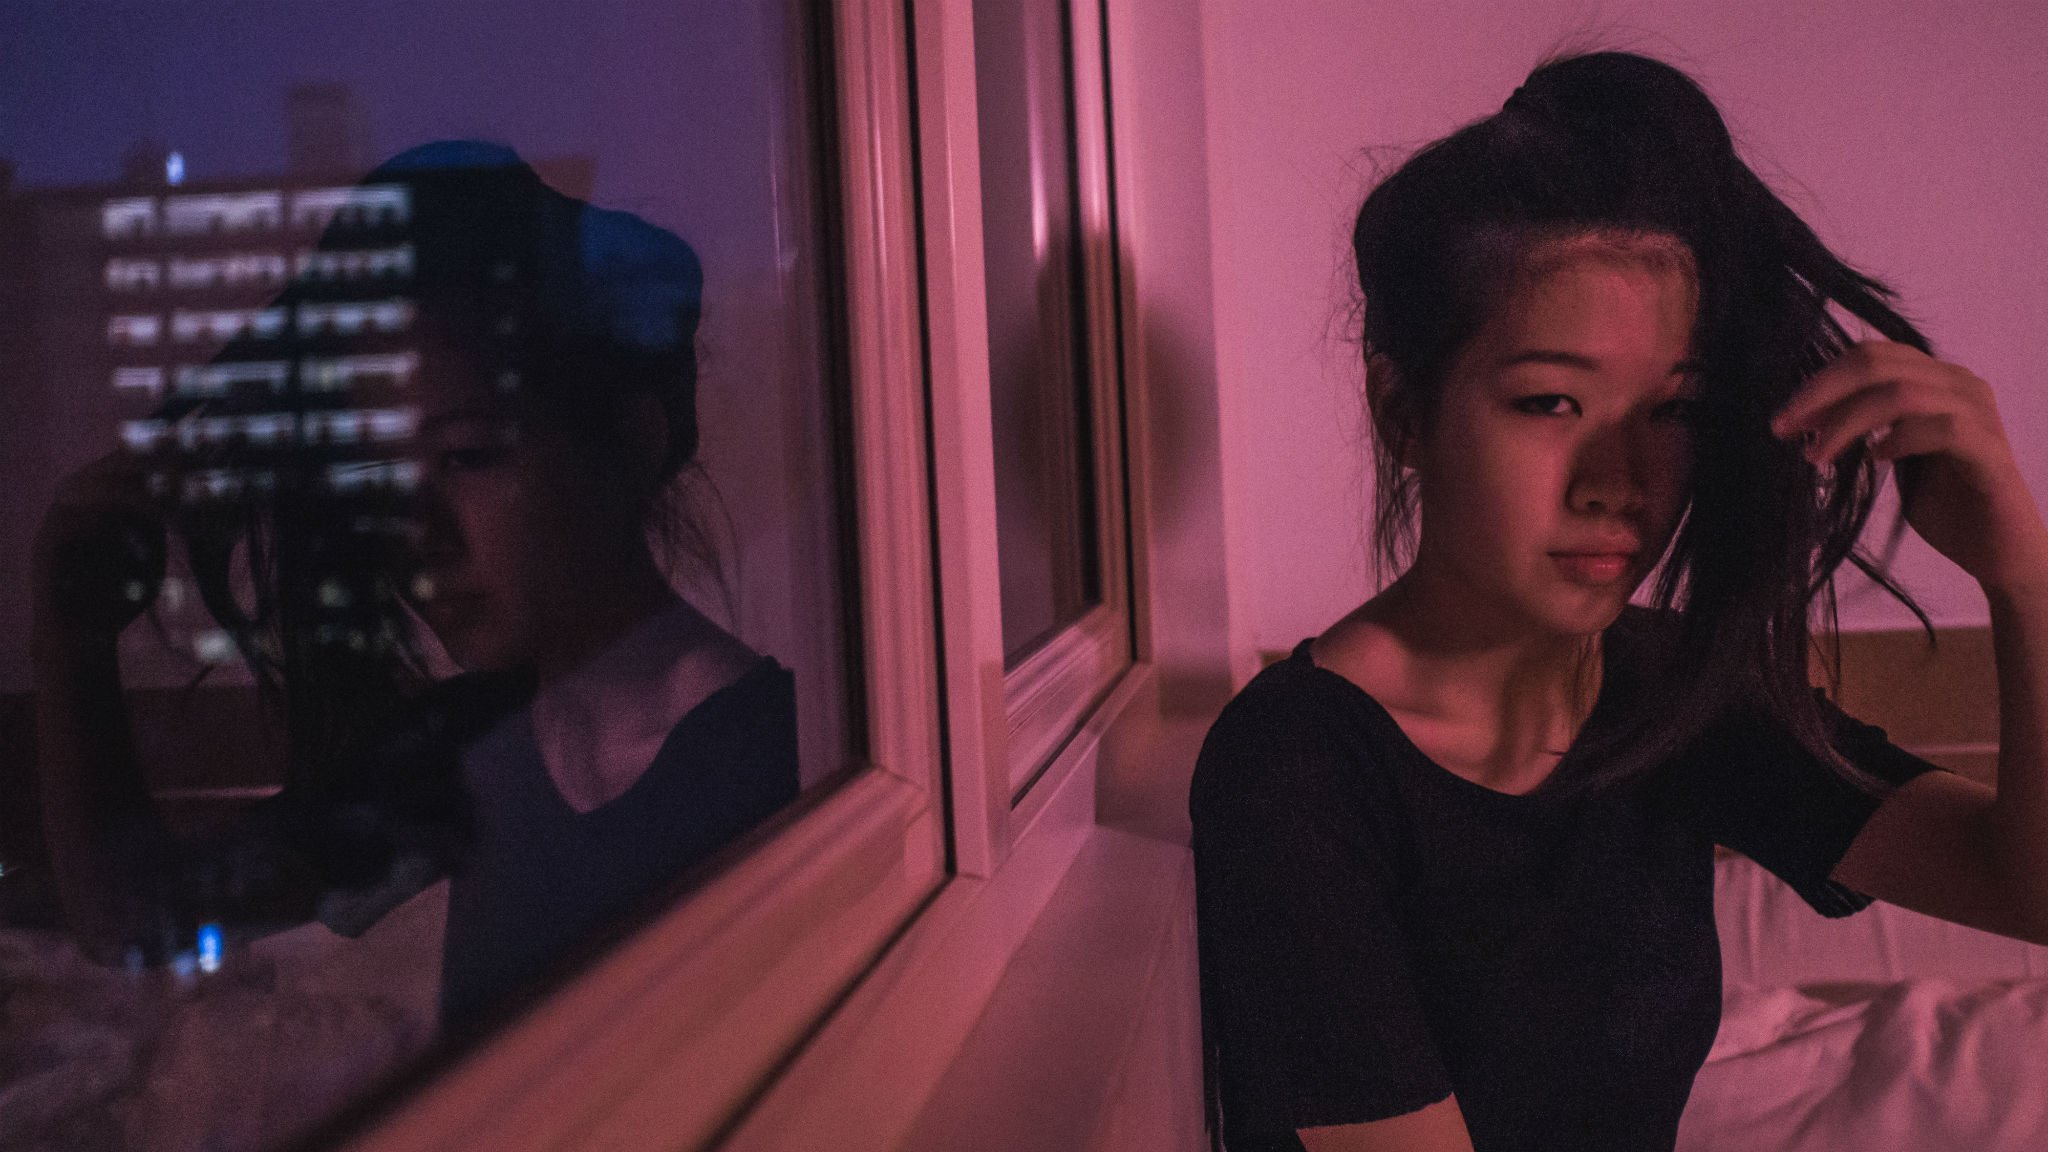 Singapore's Linying makes her mark with the 'Paris 12' EP